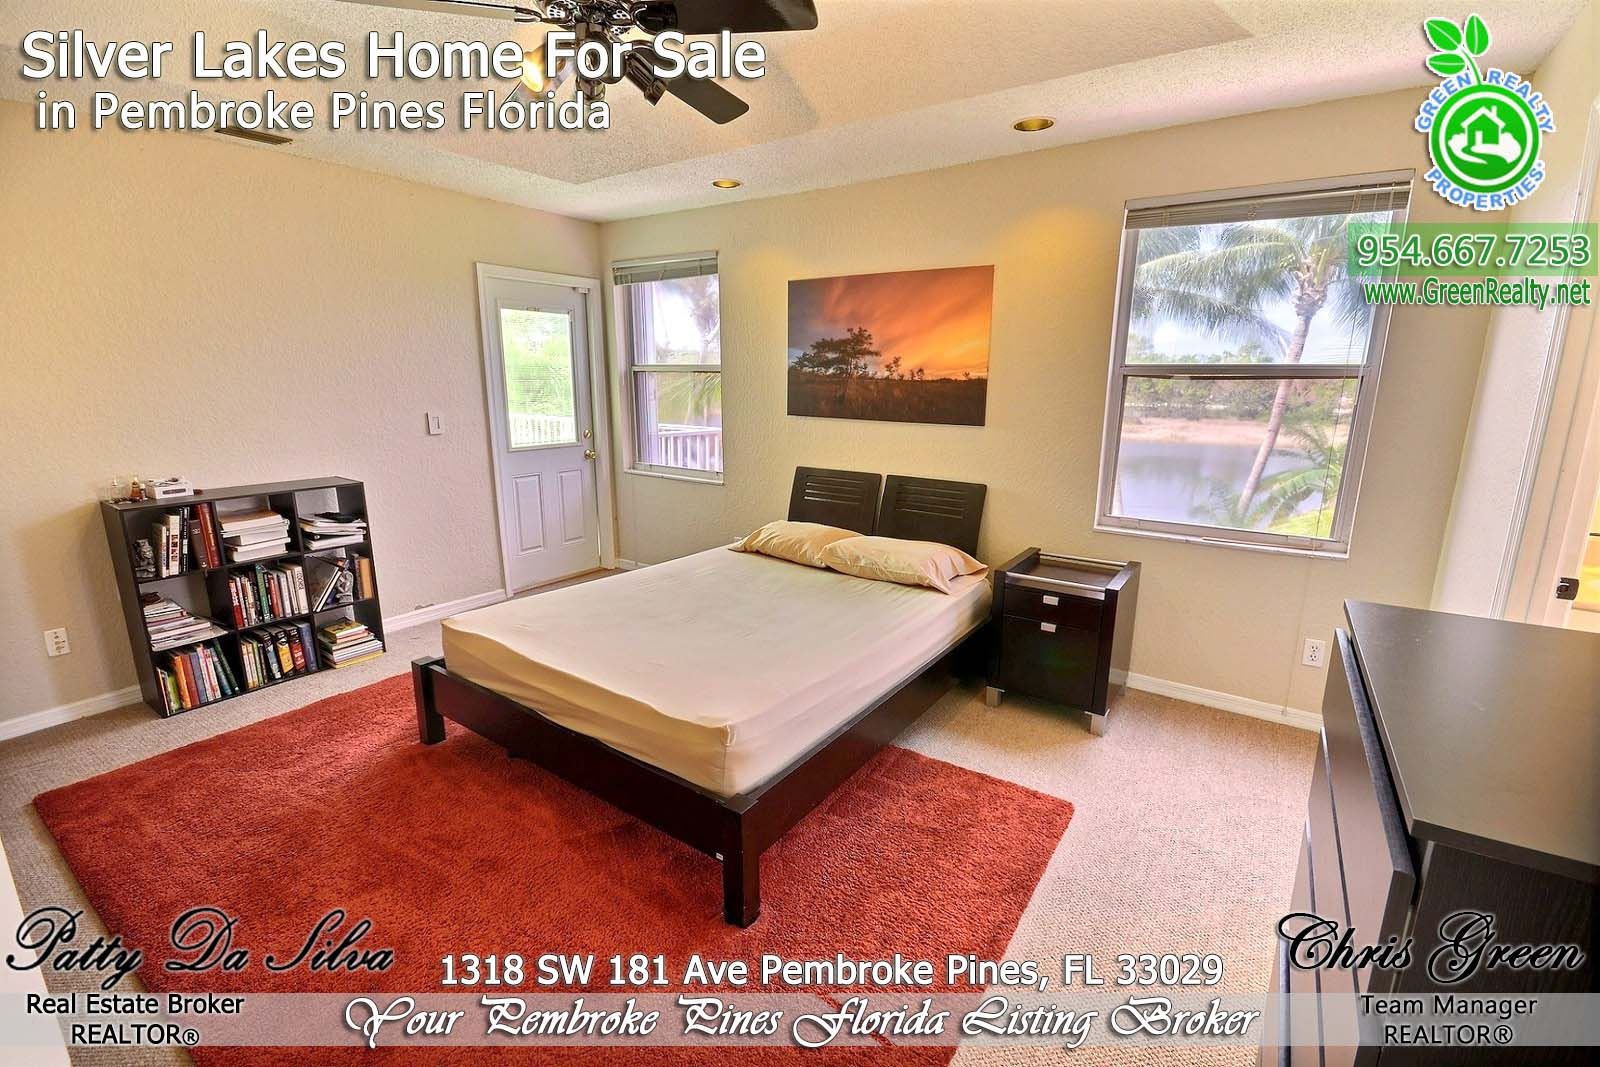 15 Silver Lakes Pembroke Pines Homes For Sale (4)